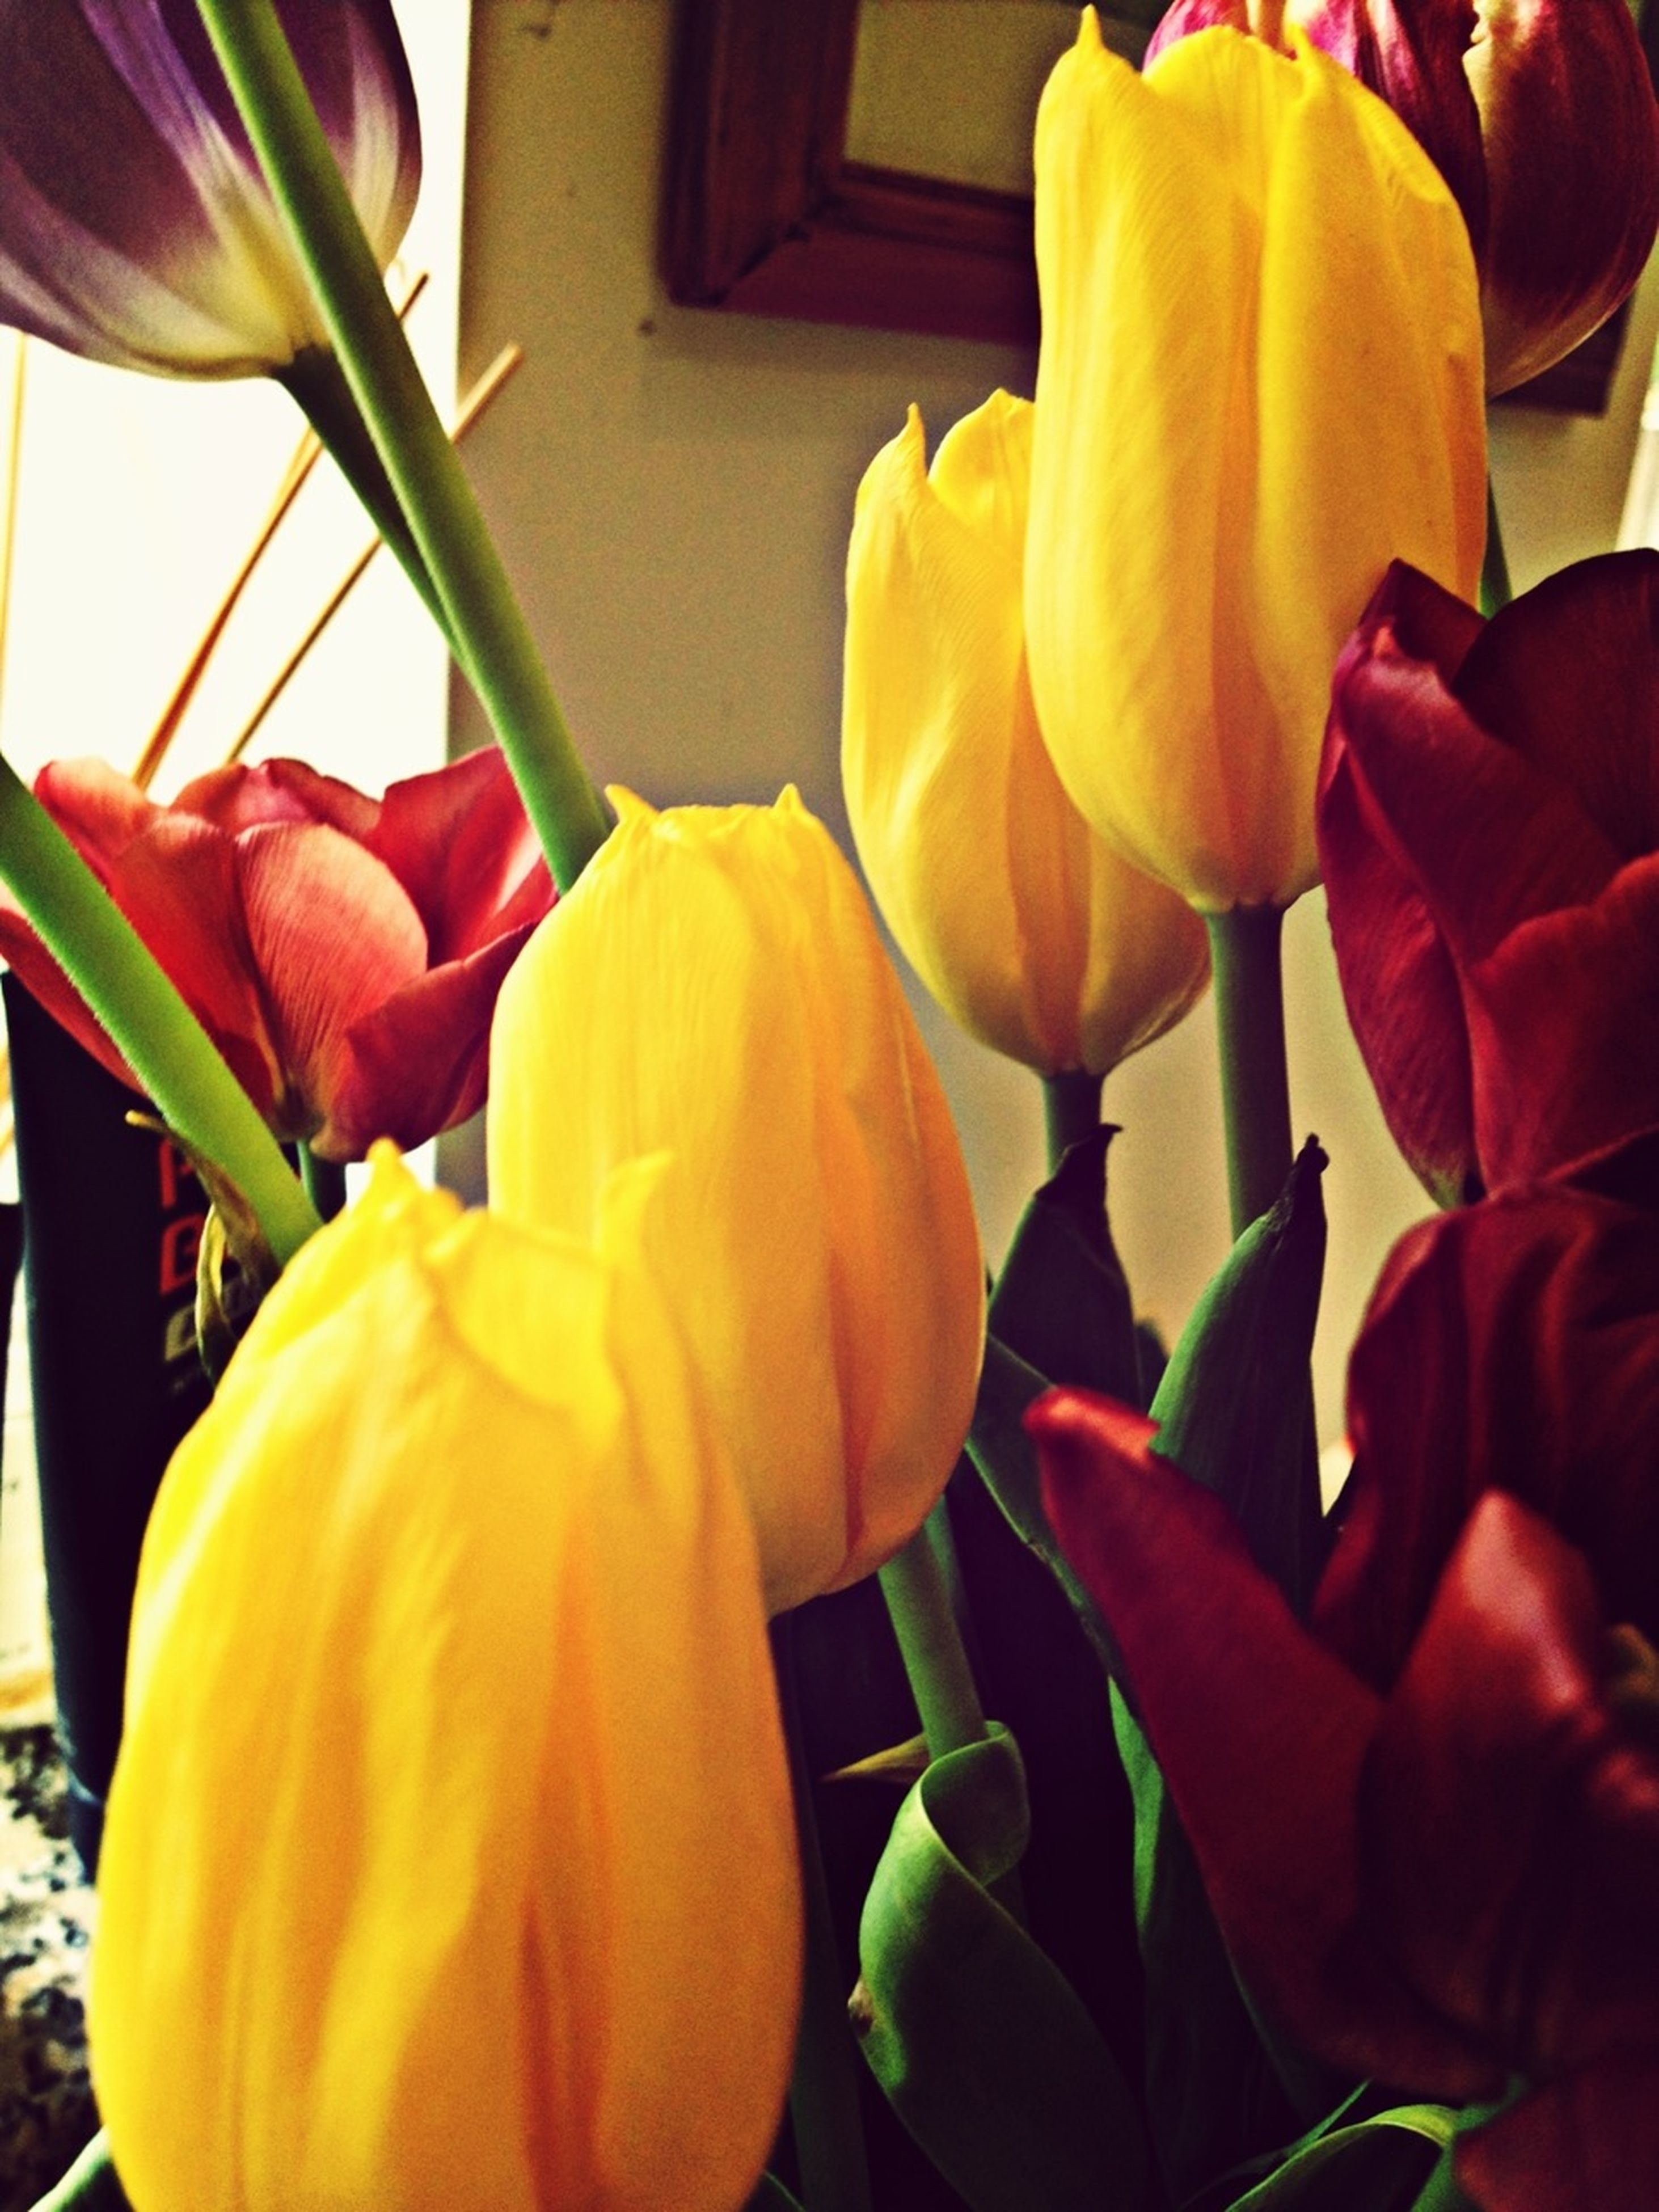 flower, petal, yellow, fragility, flower head, tulip, freshness, plant, growth, beauty in nature, rose - flower, blooming, close-up, red, nature, multi colored, day, leaf, outdoors, front or back yard